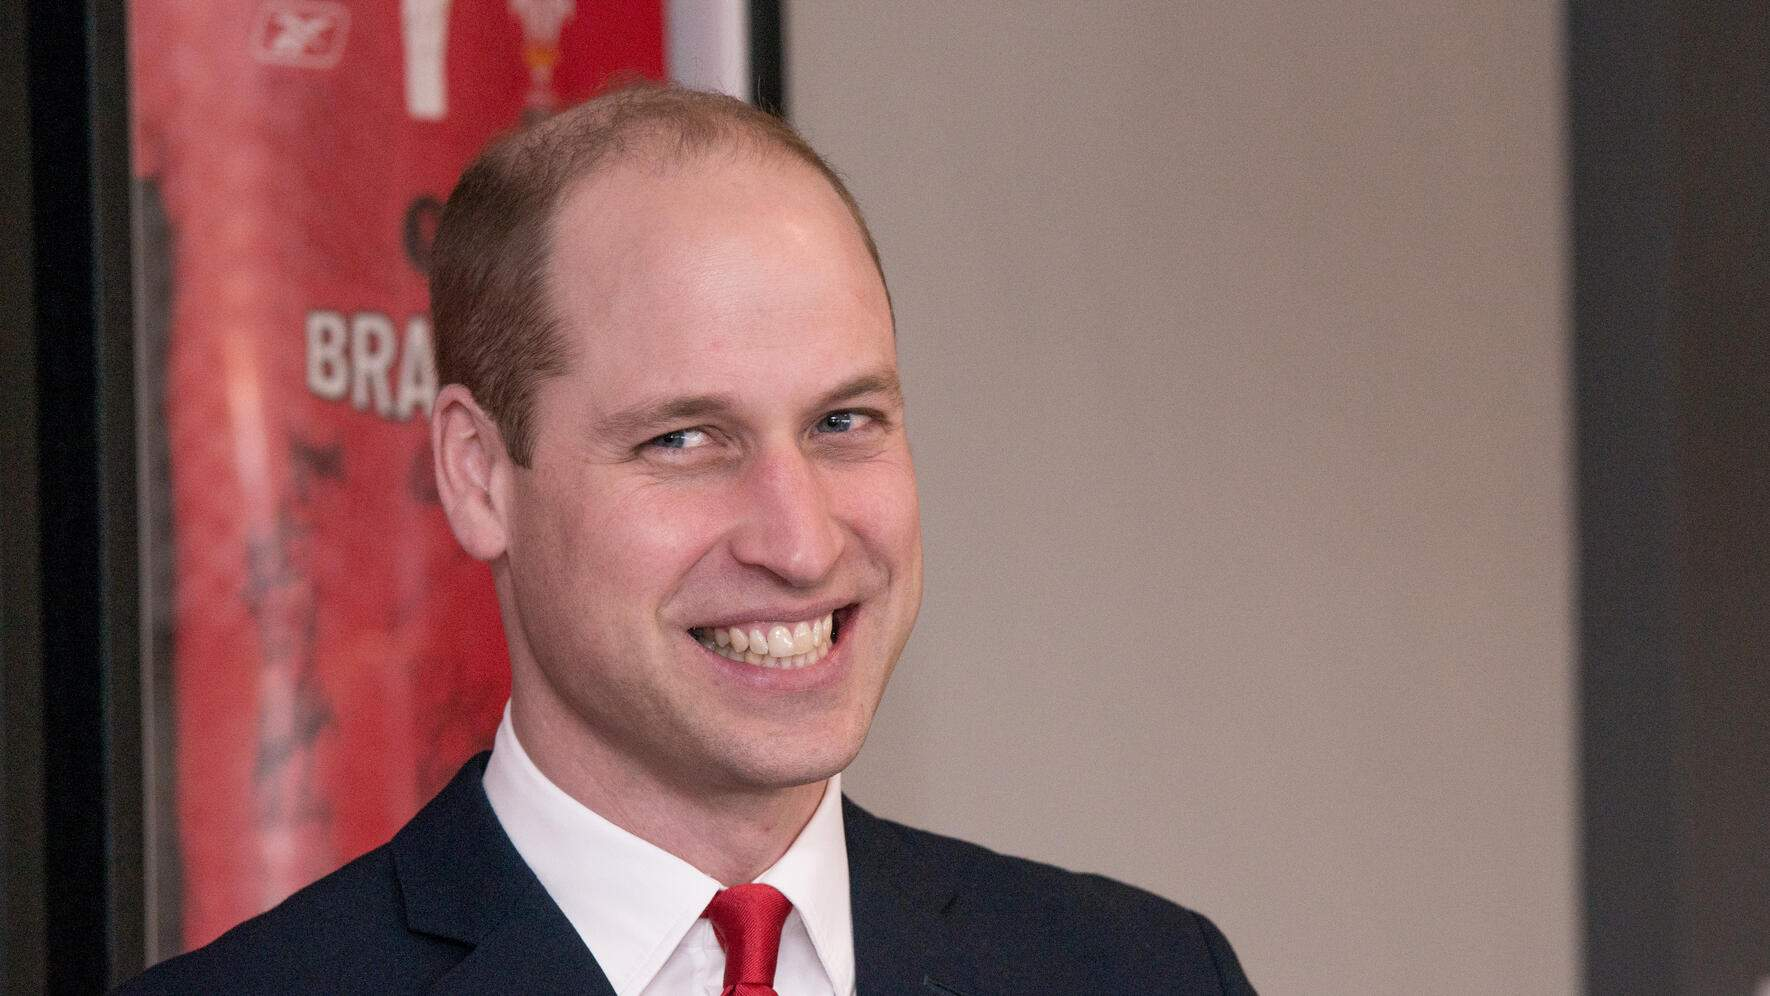 CARDIFF, WALES - MARCH 16:  Prince William, Duke of Cambridge officially opens Brains Brewery, before attending the Wales vs Ireland Six Nations Match on March 16, 2019 in Cardiff, Wales. The Duke of Cambridge is Patron of the Welsh Rugby Union (WRU). (Photo by Richard Stonehouse - WPA Pool/Getty Images)